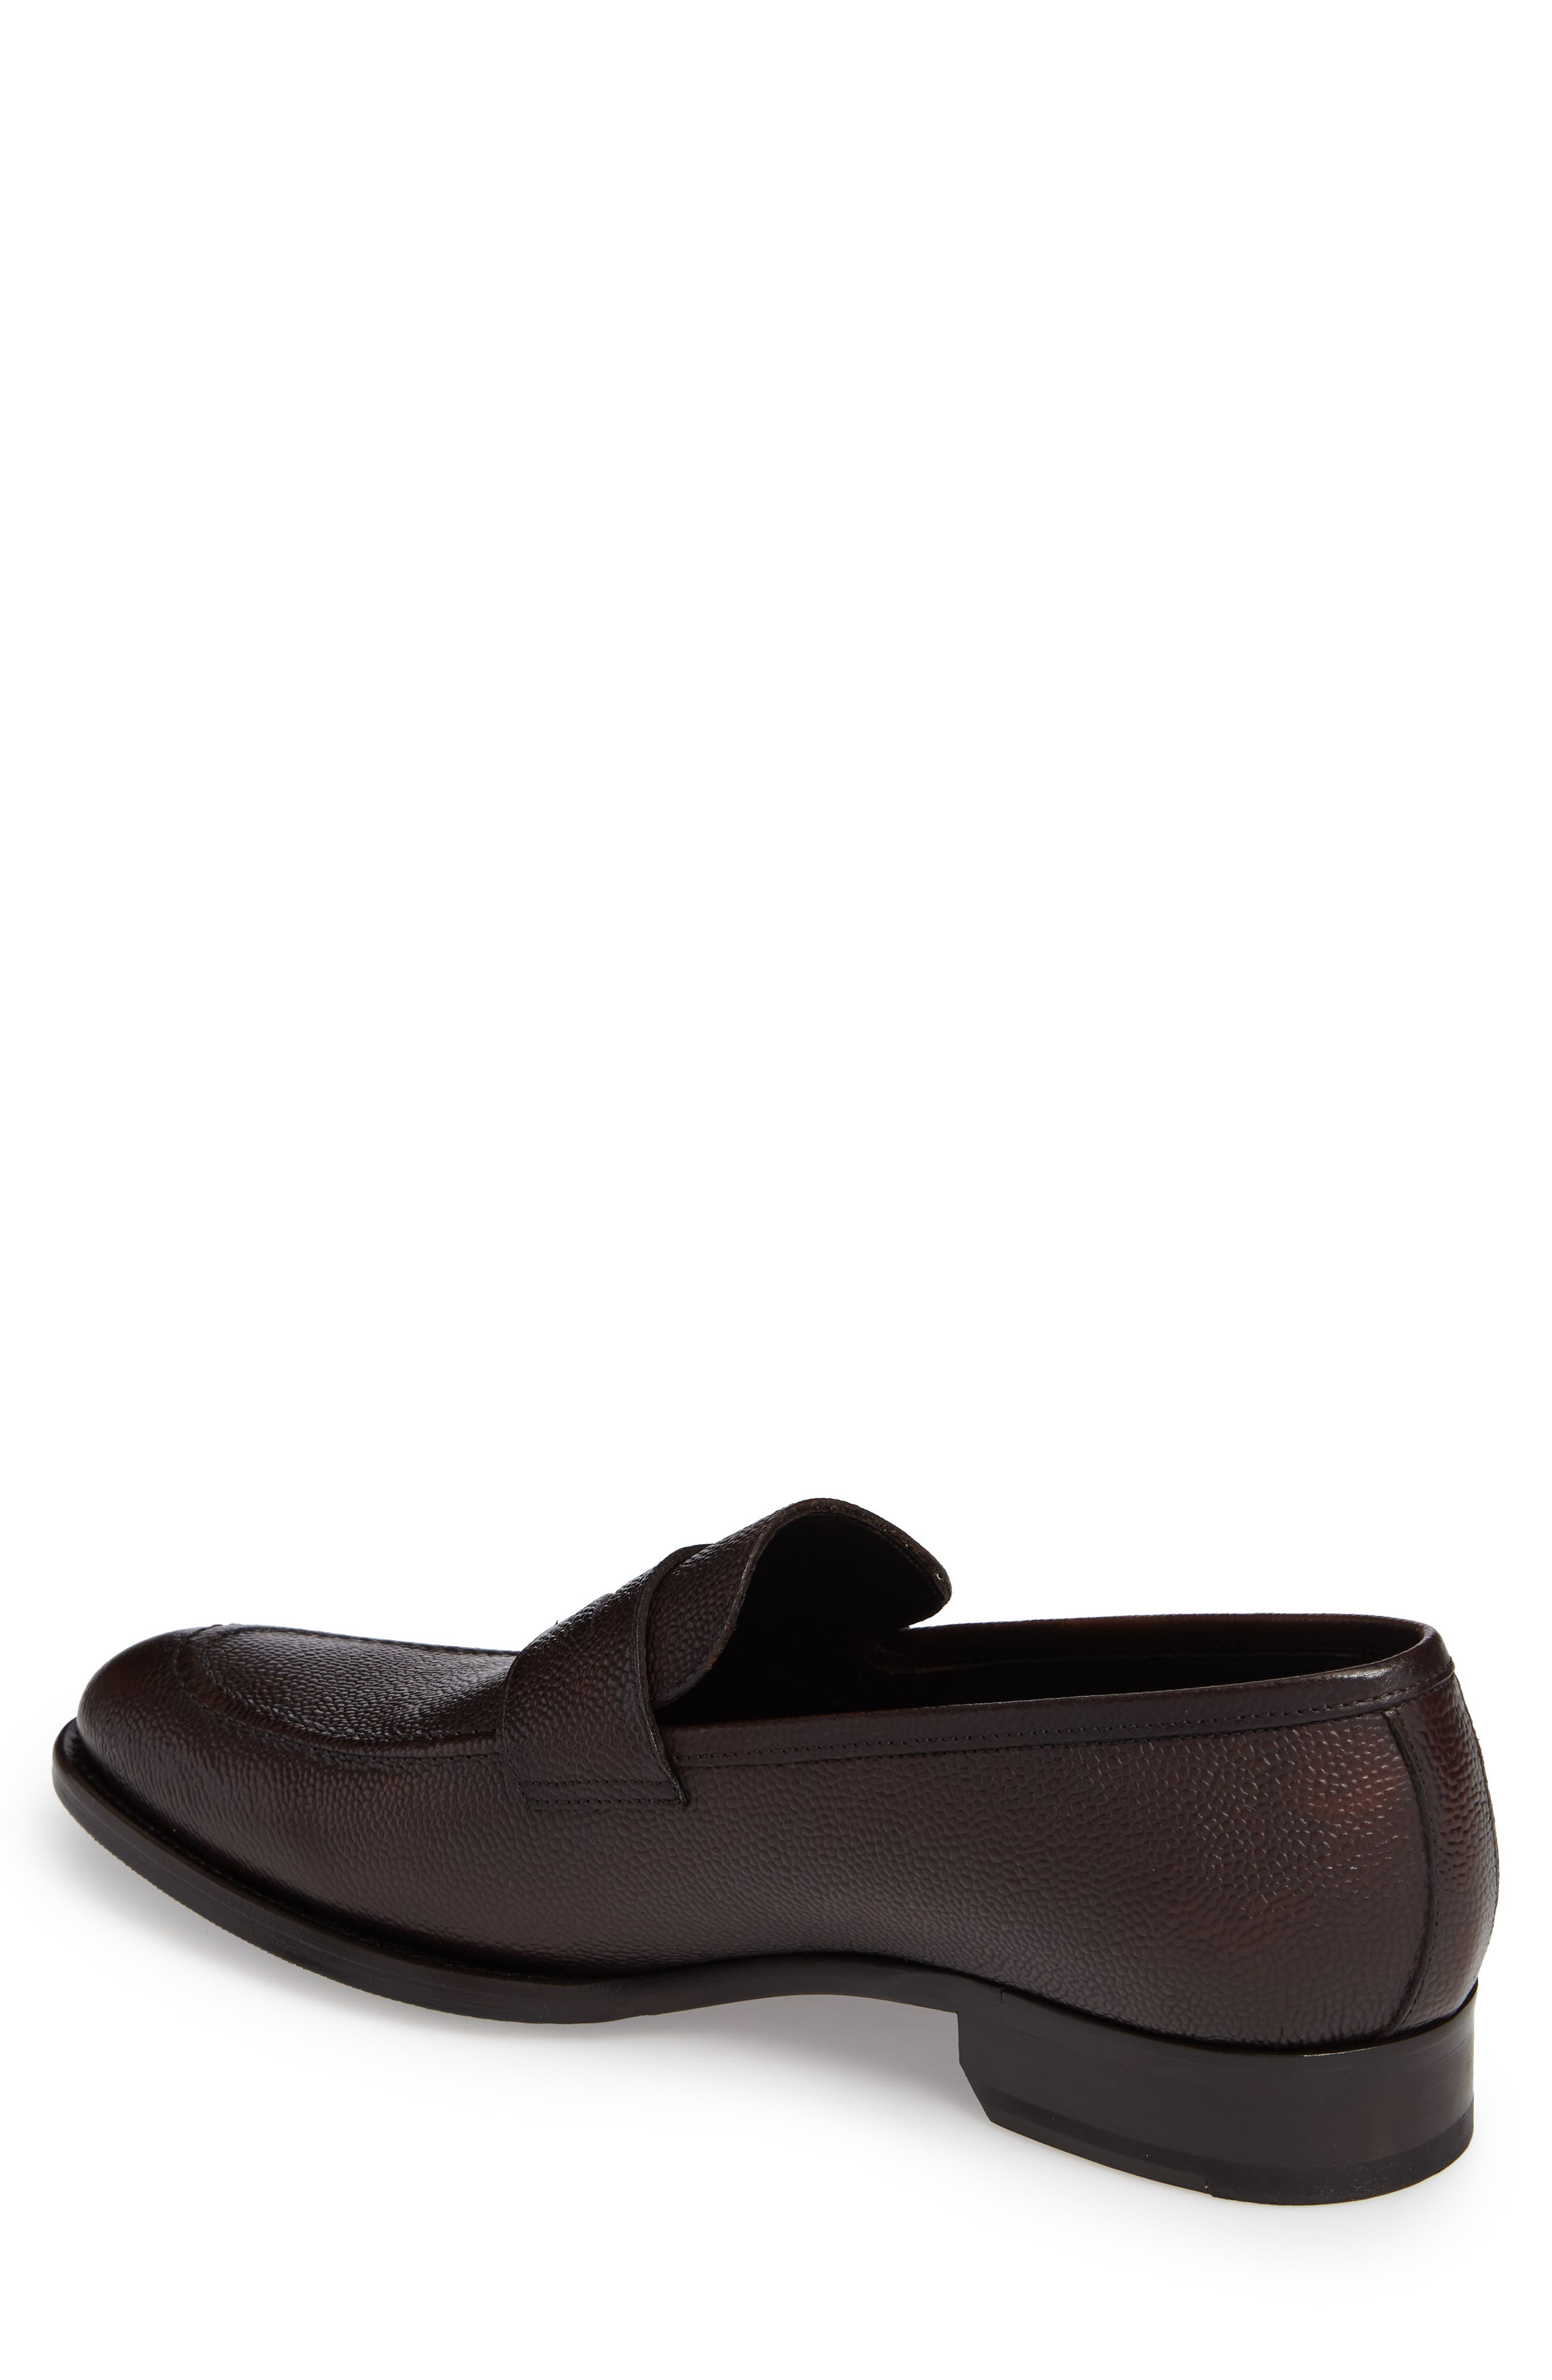 James Penny Loafer,                             Alternate thumbnail 2, color,                             200